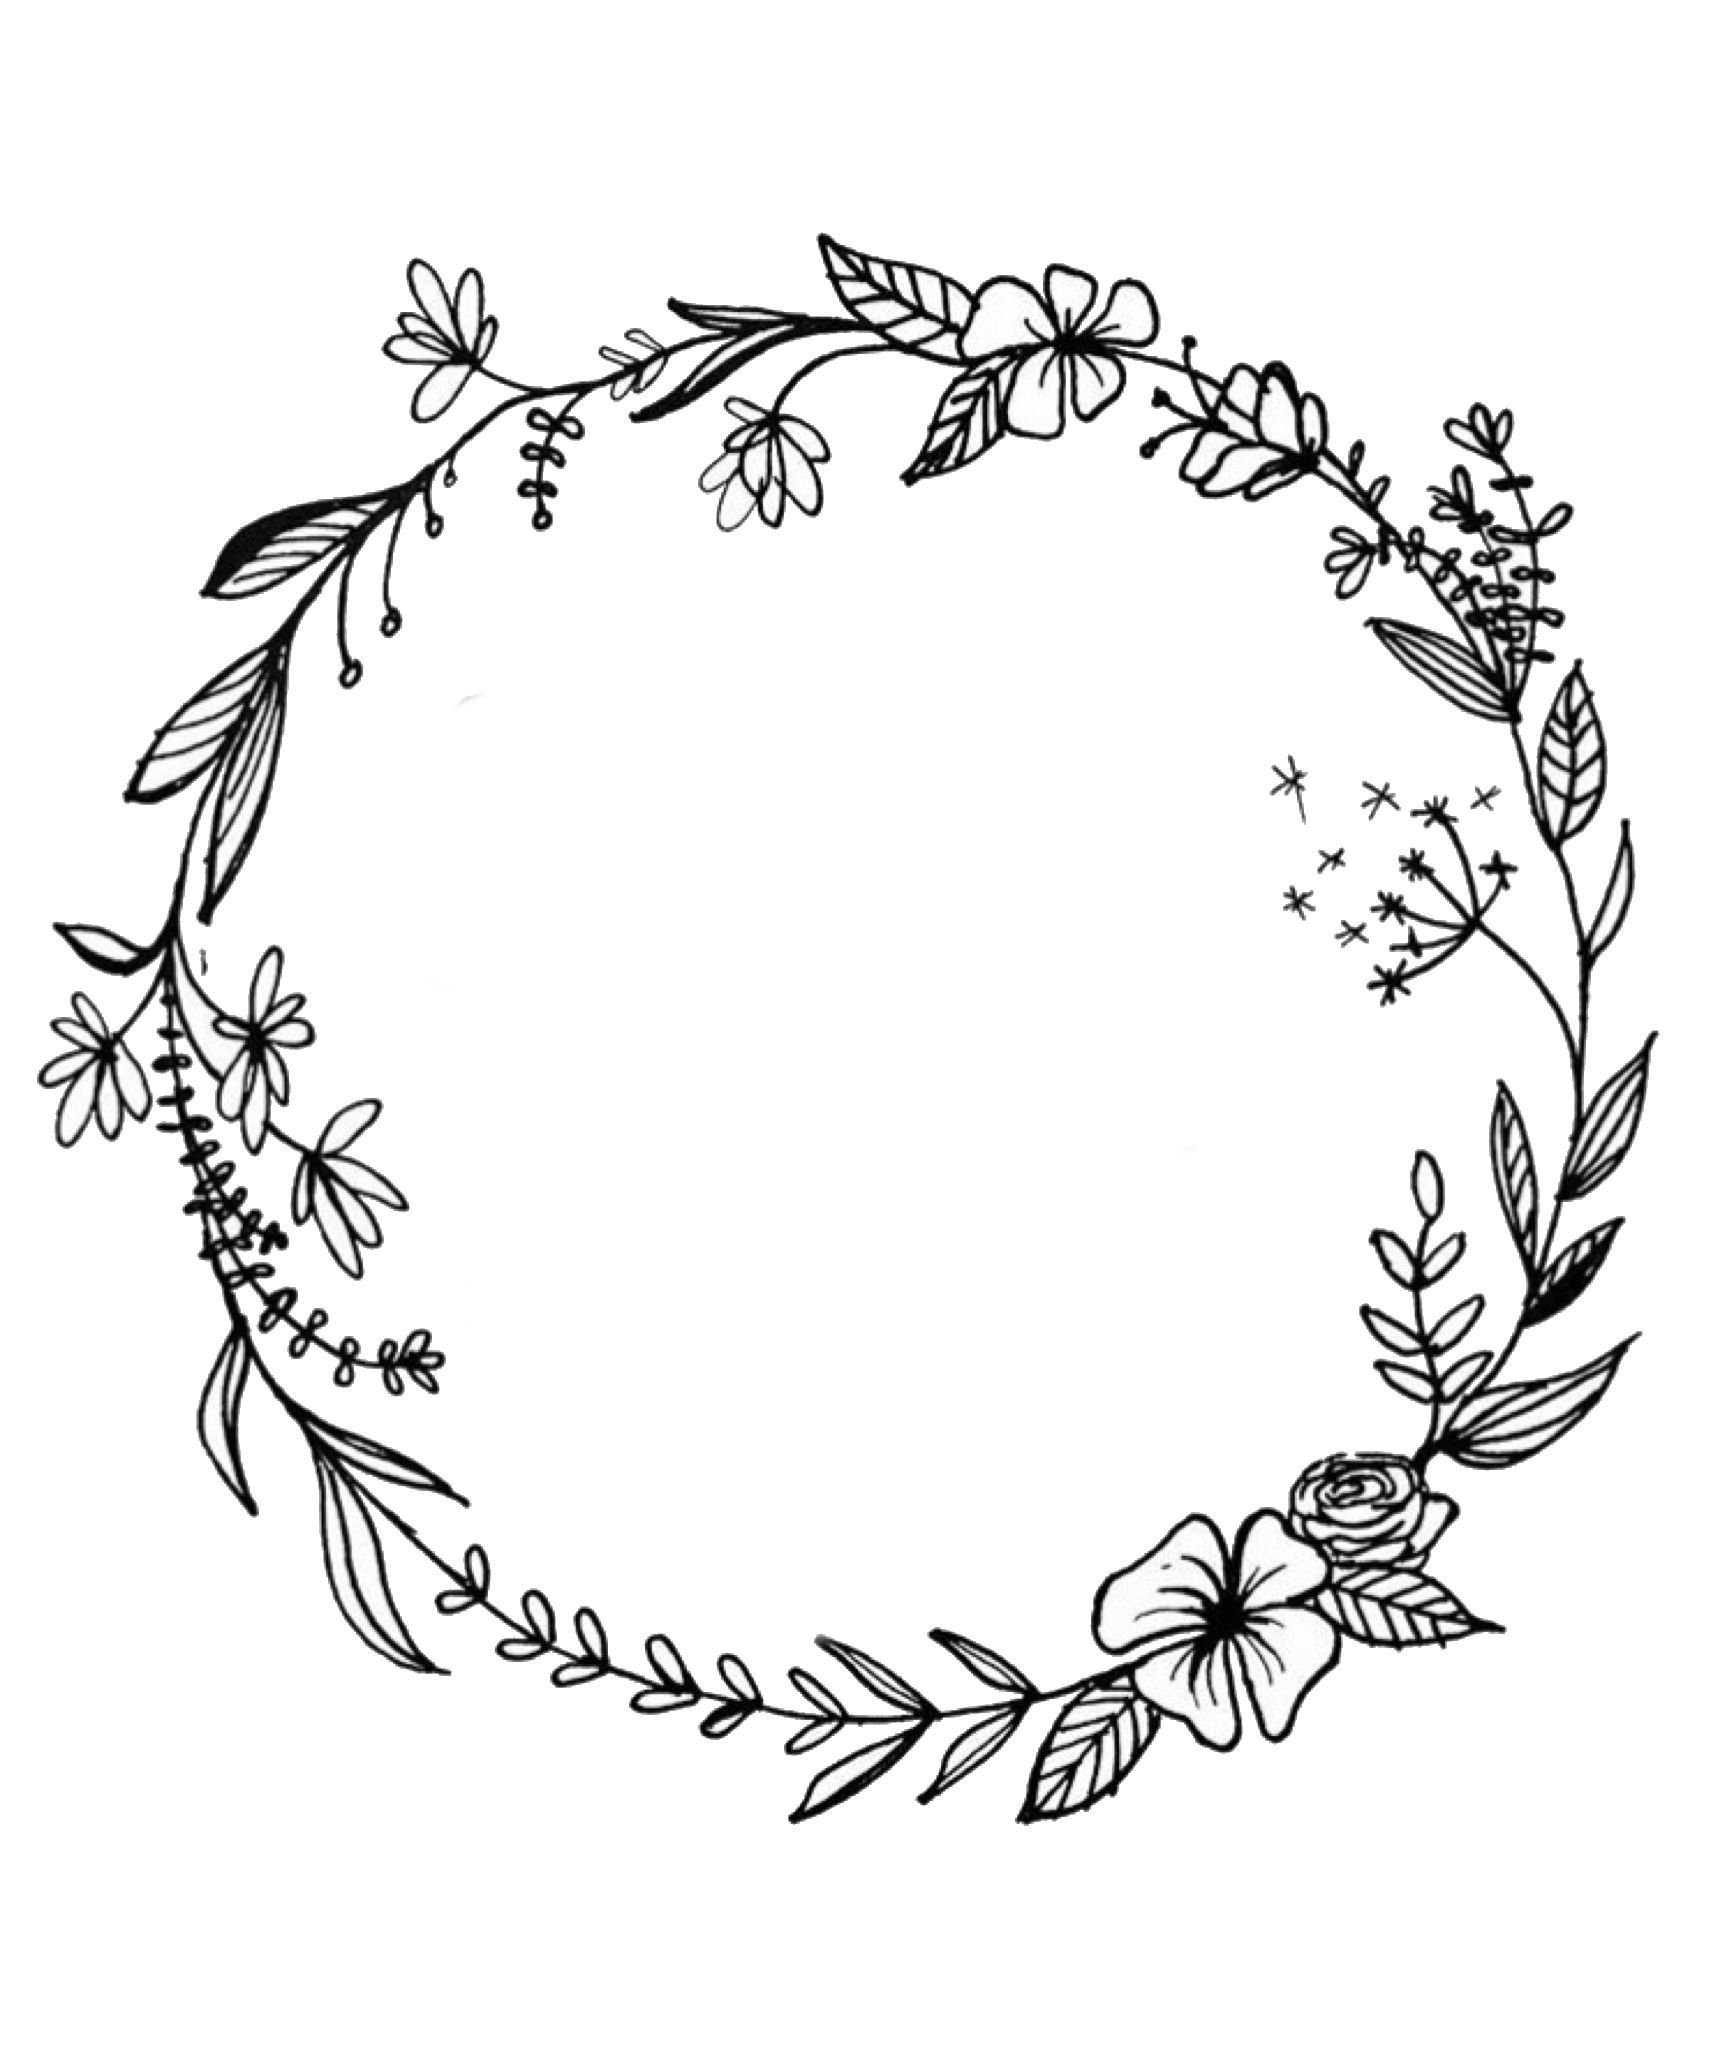 Floral Wreath In 2020 Floral Wreath Drawing Wreath Drawing Flower Tattoo Designs